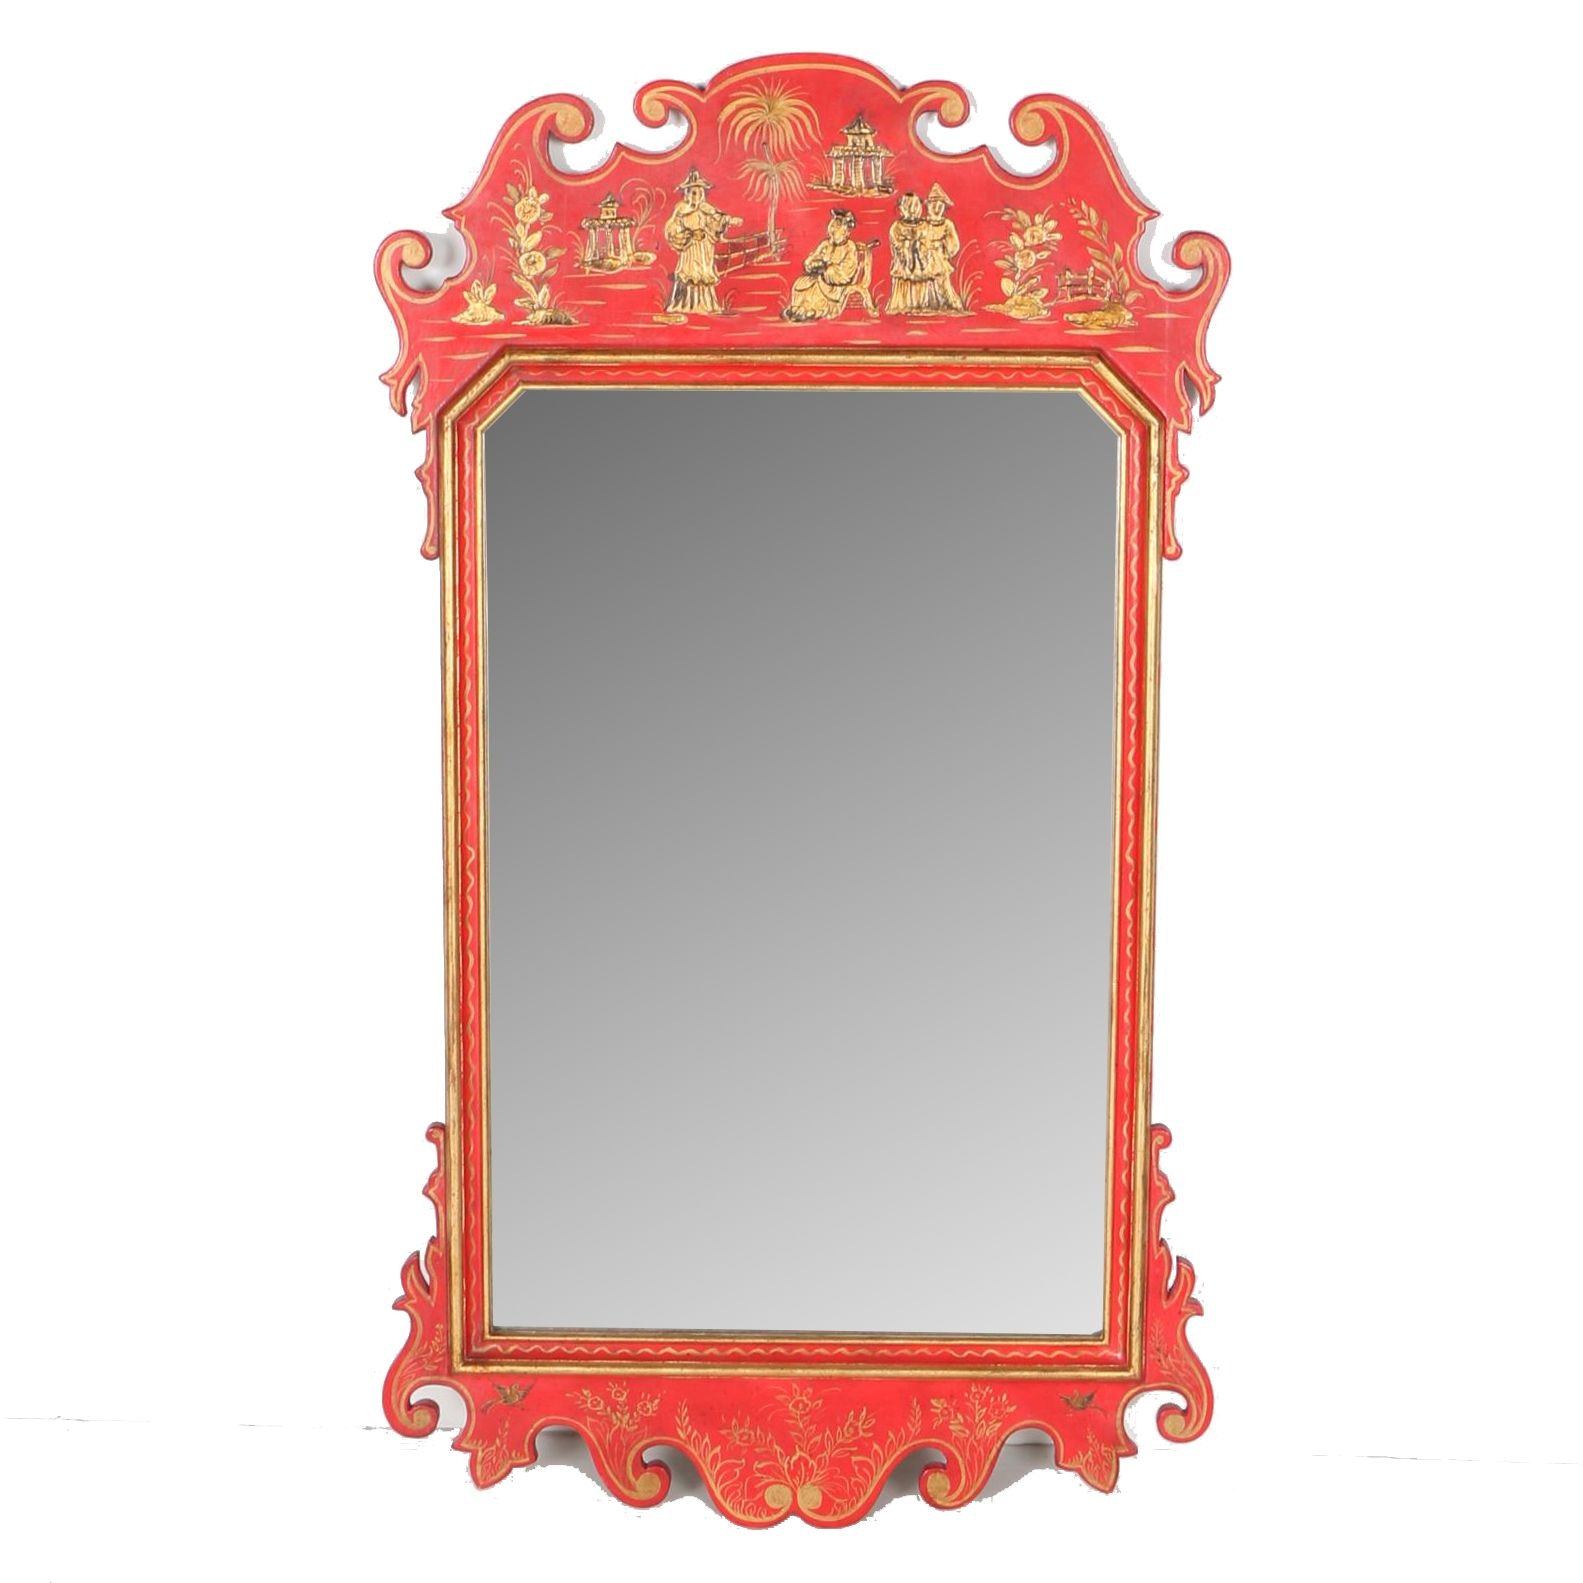 Hand-Painted Chinese Inspired Mirror